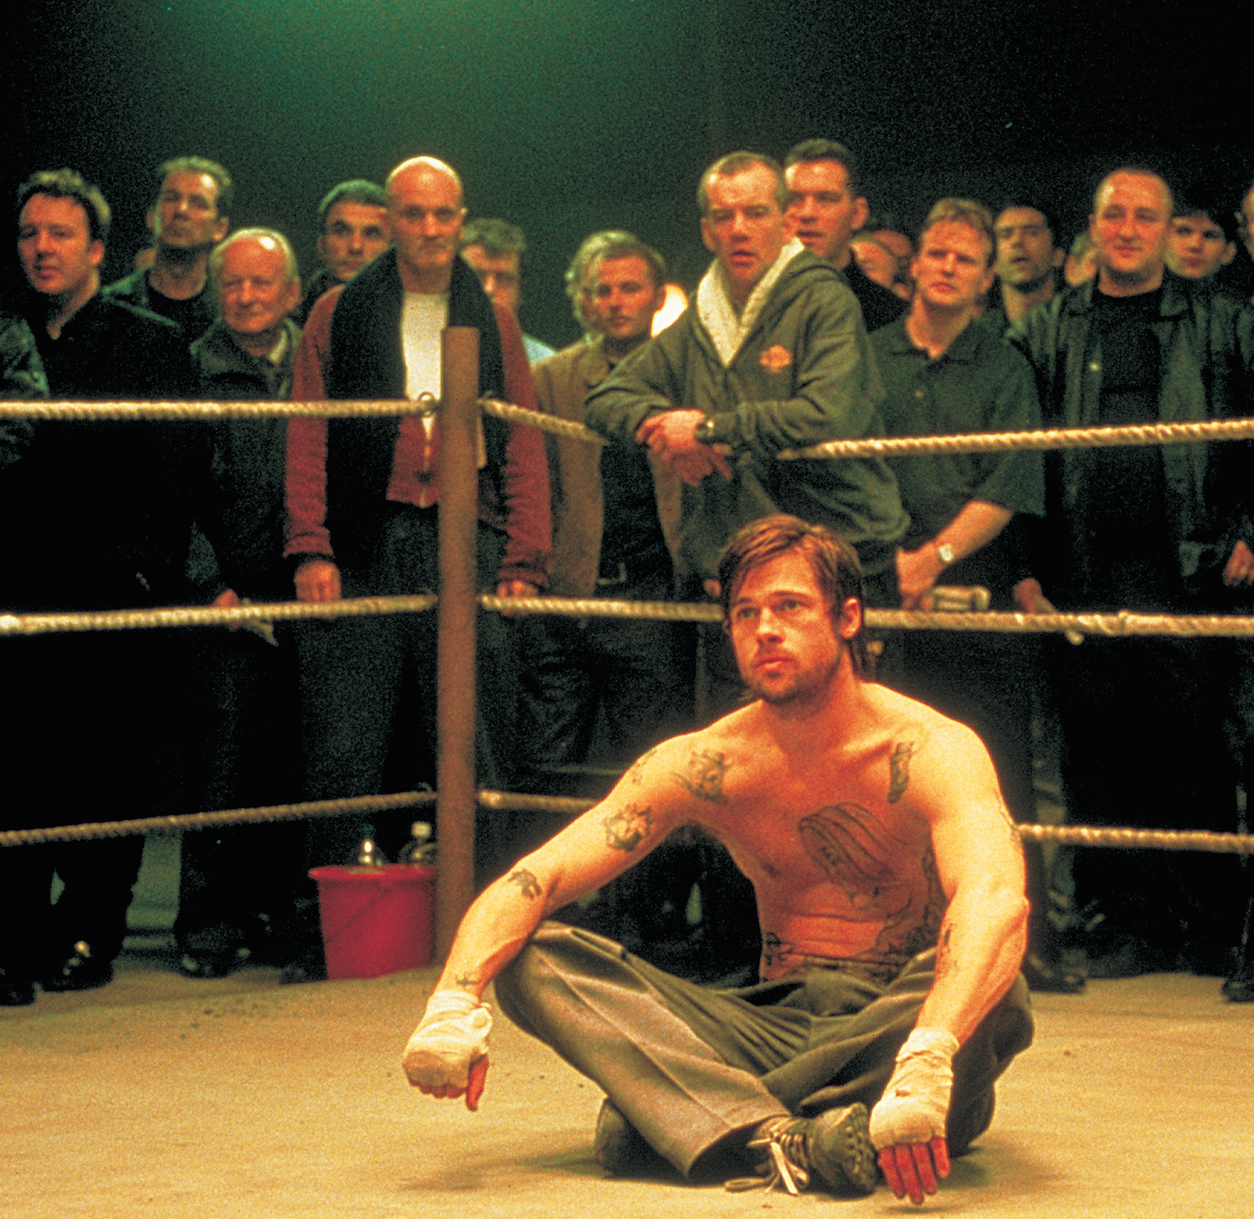 Snatch - 2000 - Guy Ritchie - خیالباف